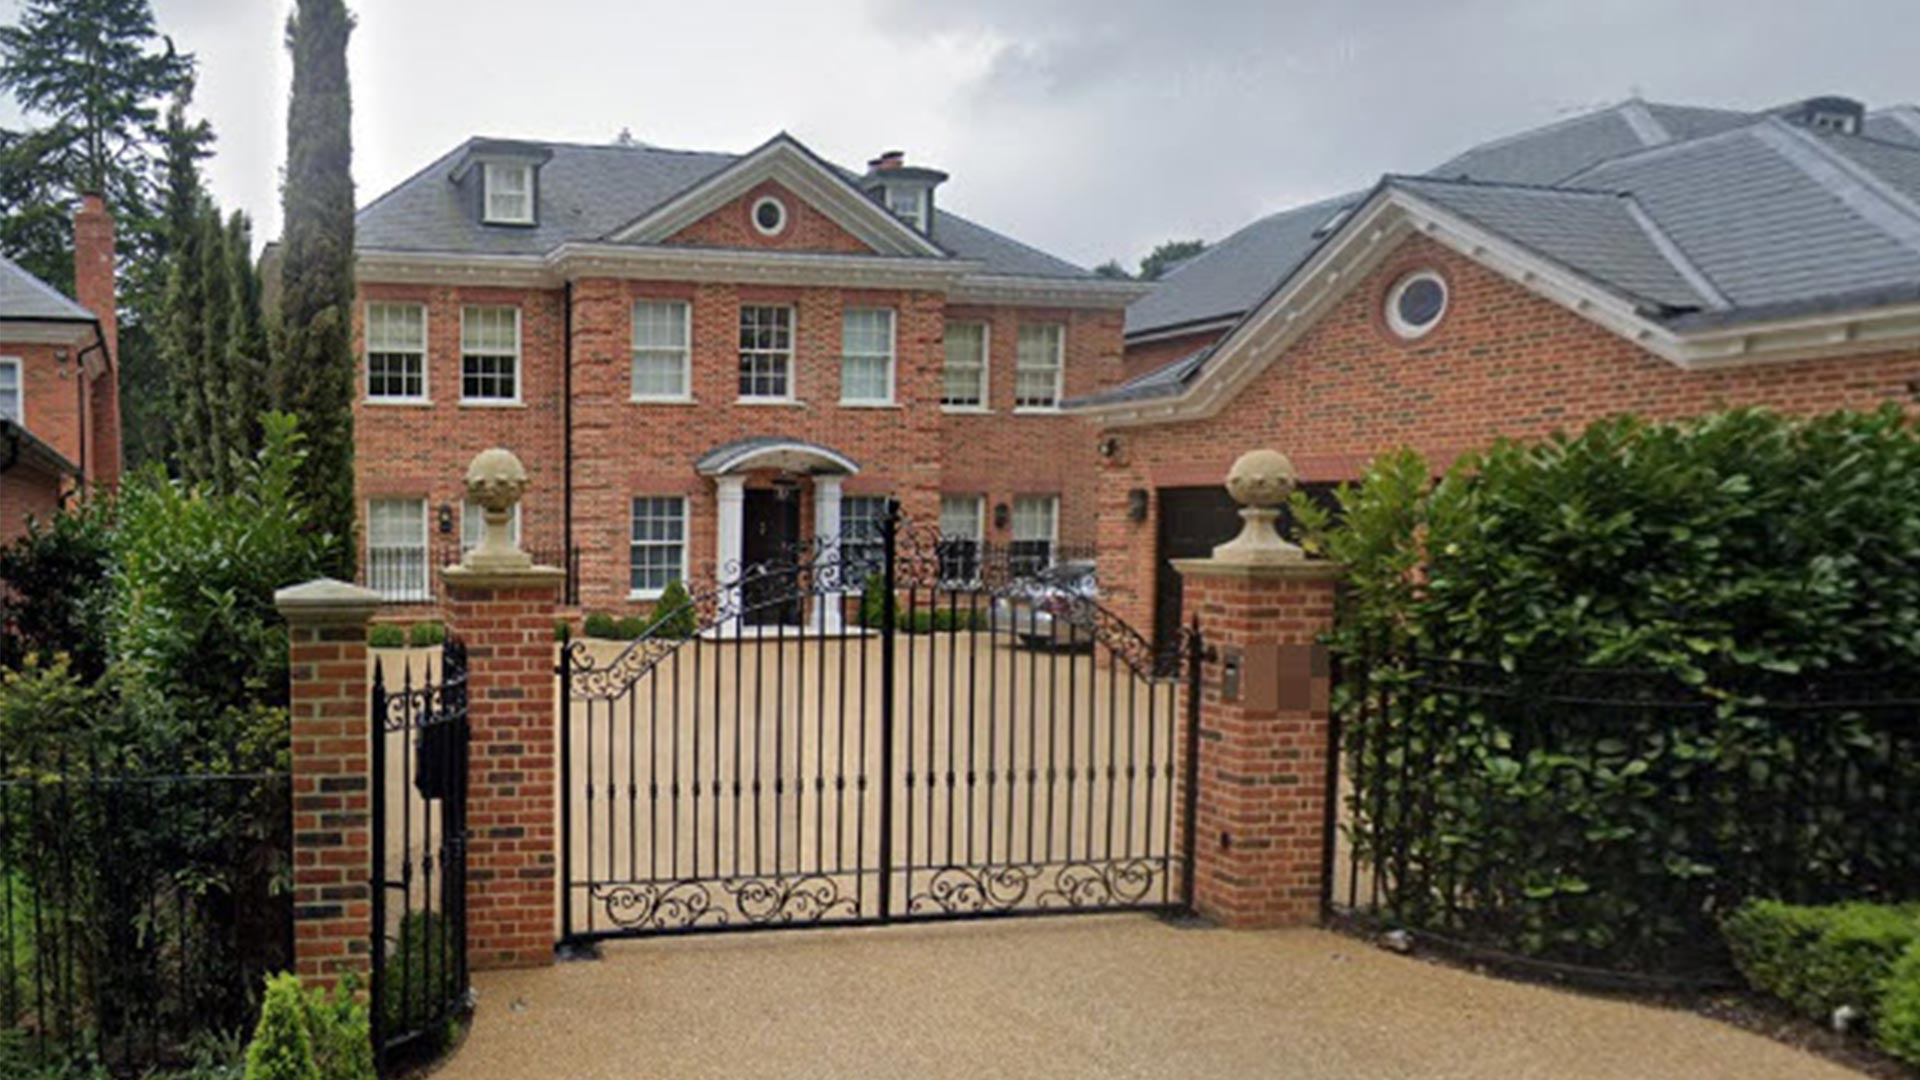 Residential Property | Buckinghamshire